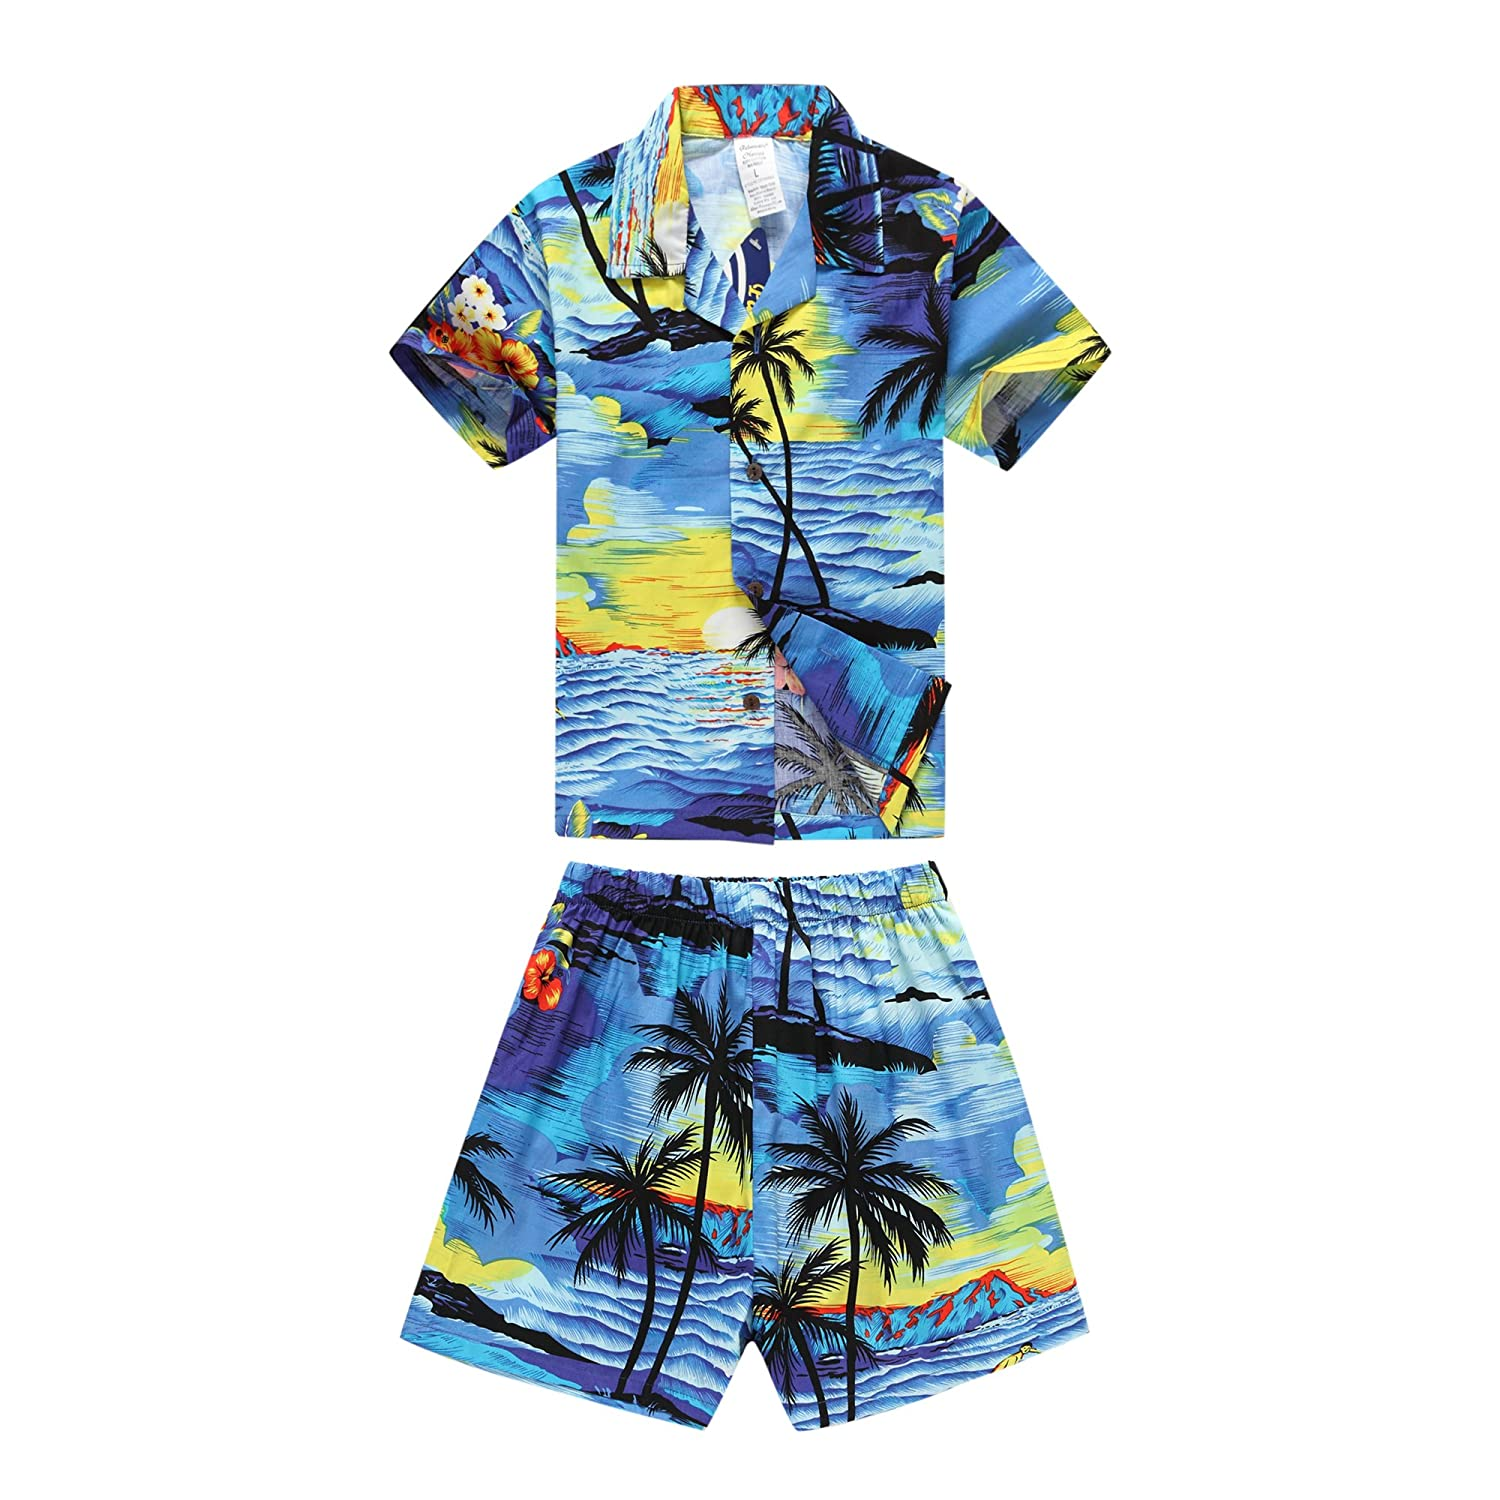 Boy Hawaiian Aloha Luau Shirt and Shorts 2 Piece Cabana Set in Red Sunset Palm Wave 049101